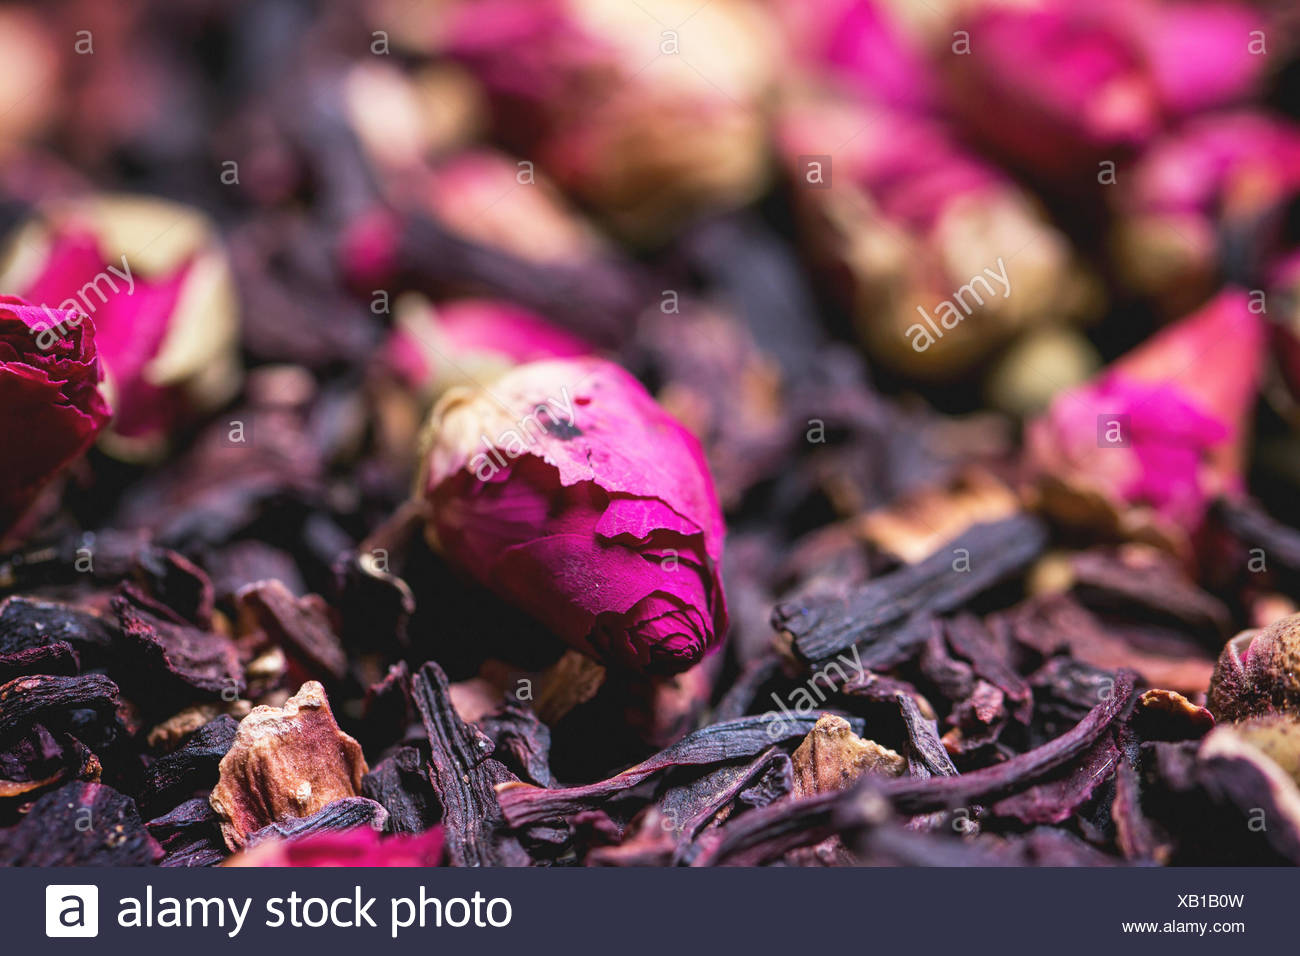 Heap of tea roses and dried hibiscus flower stock photo 282157705 heap of tea roses and dried hibiscus flower izmirmasajfo Images